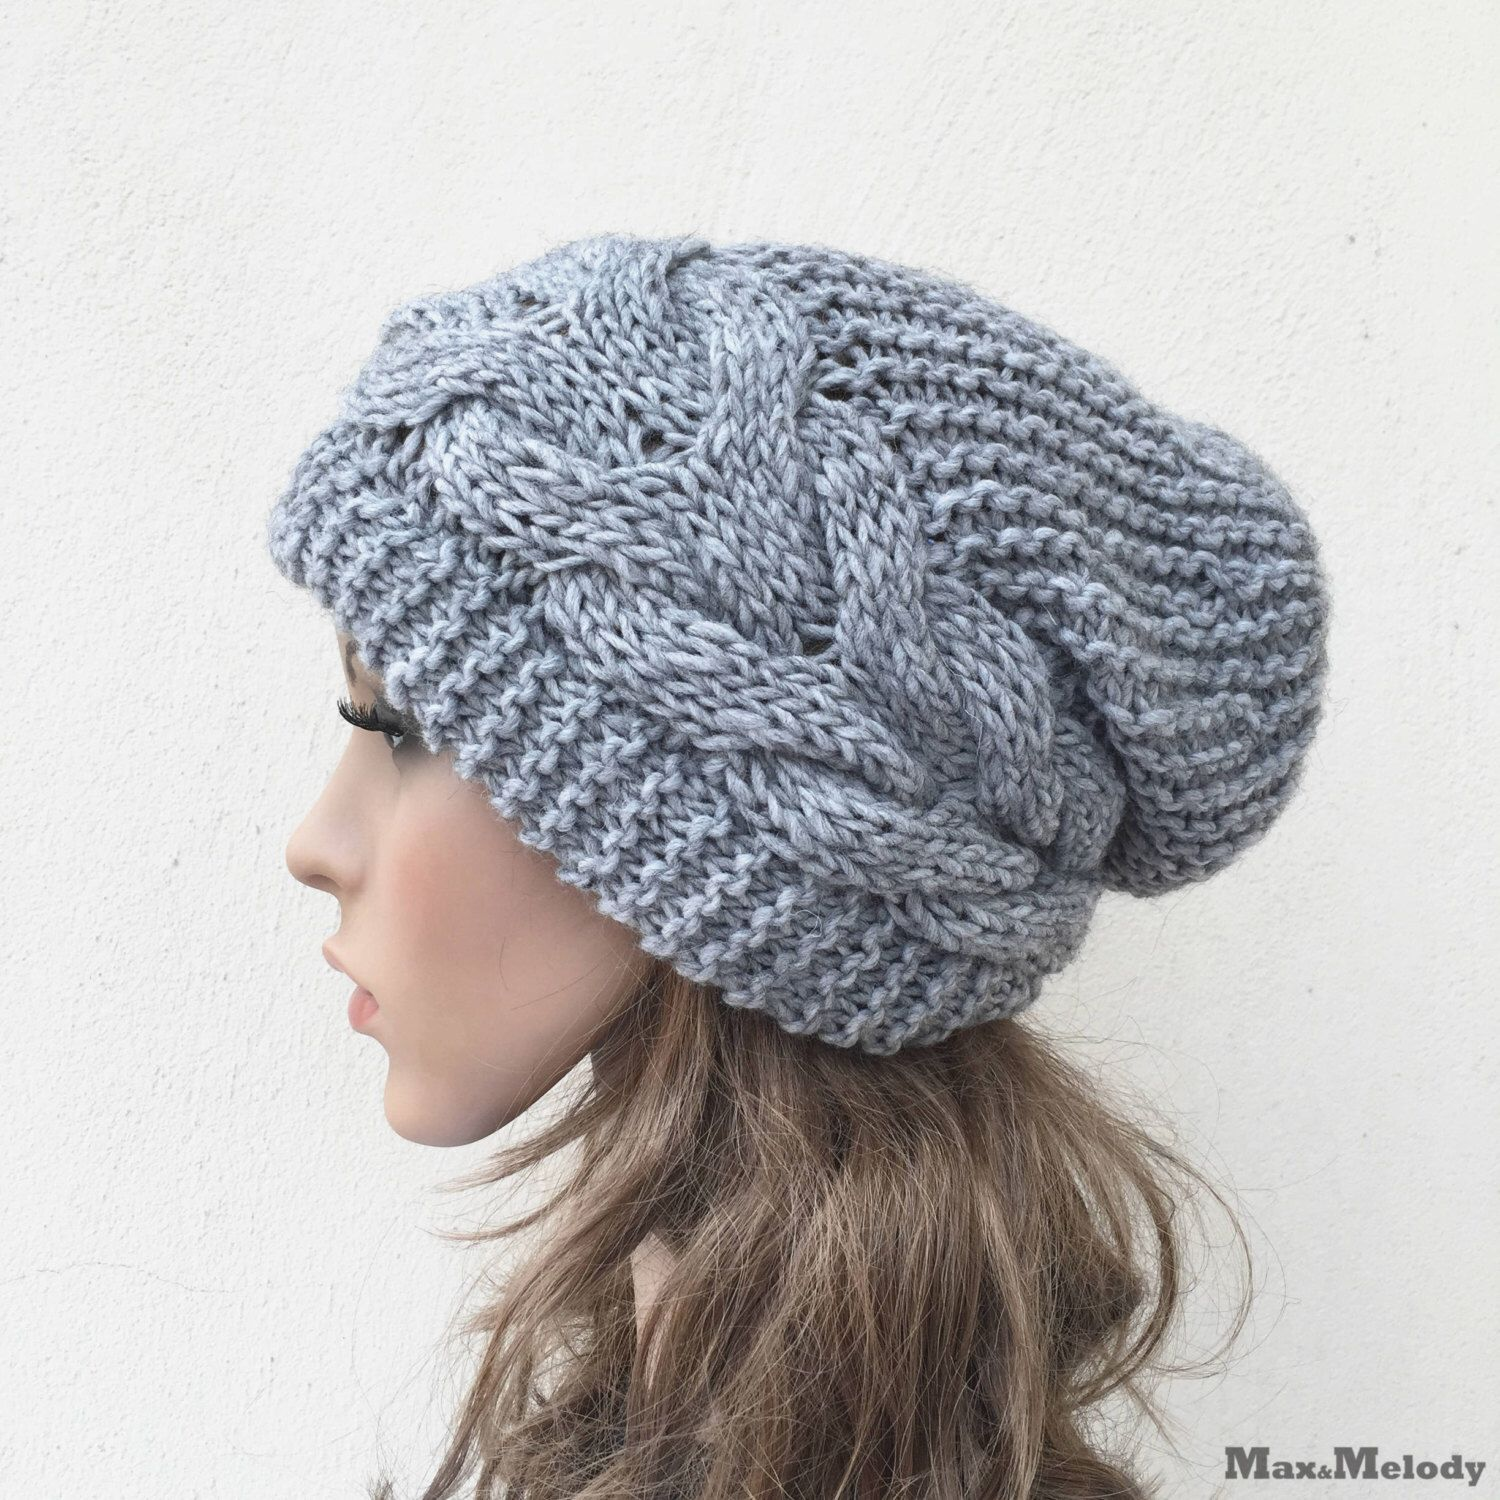 Hand stricken Hut Oversized Chunky Wollmütze slouchy Hut grau Kabel ...